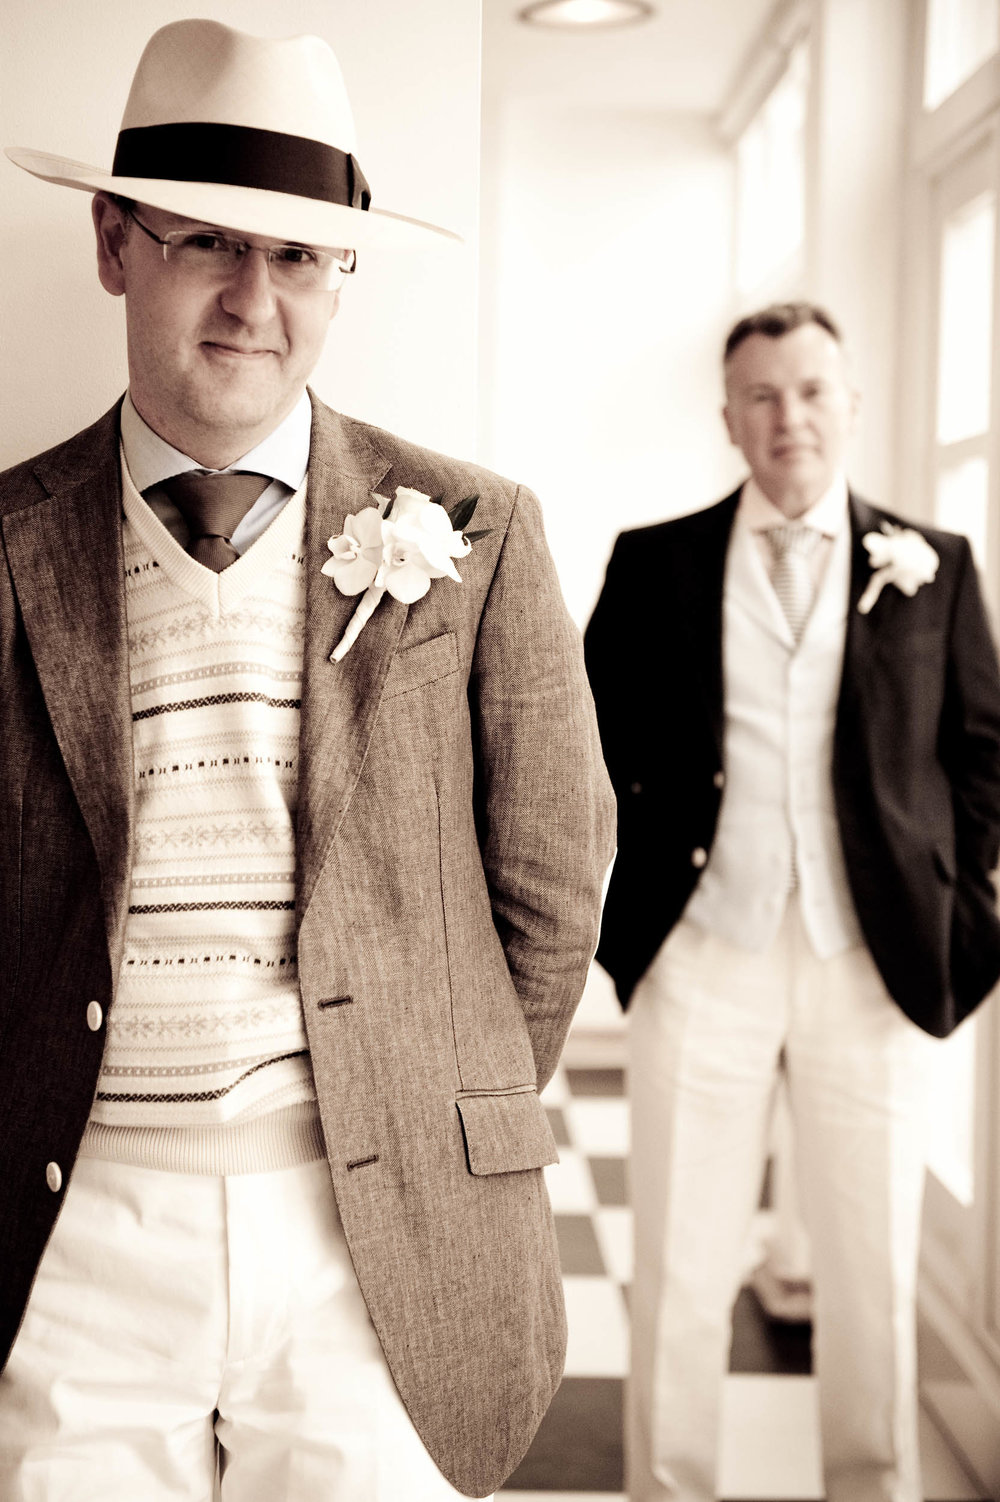 gay-wedding-2.jpg